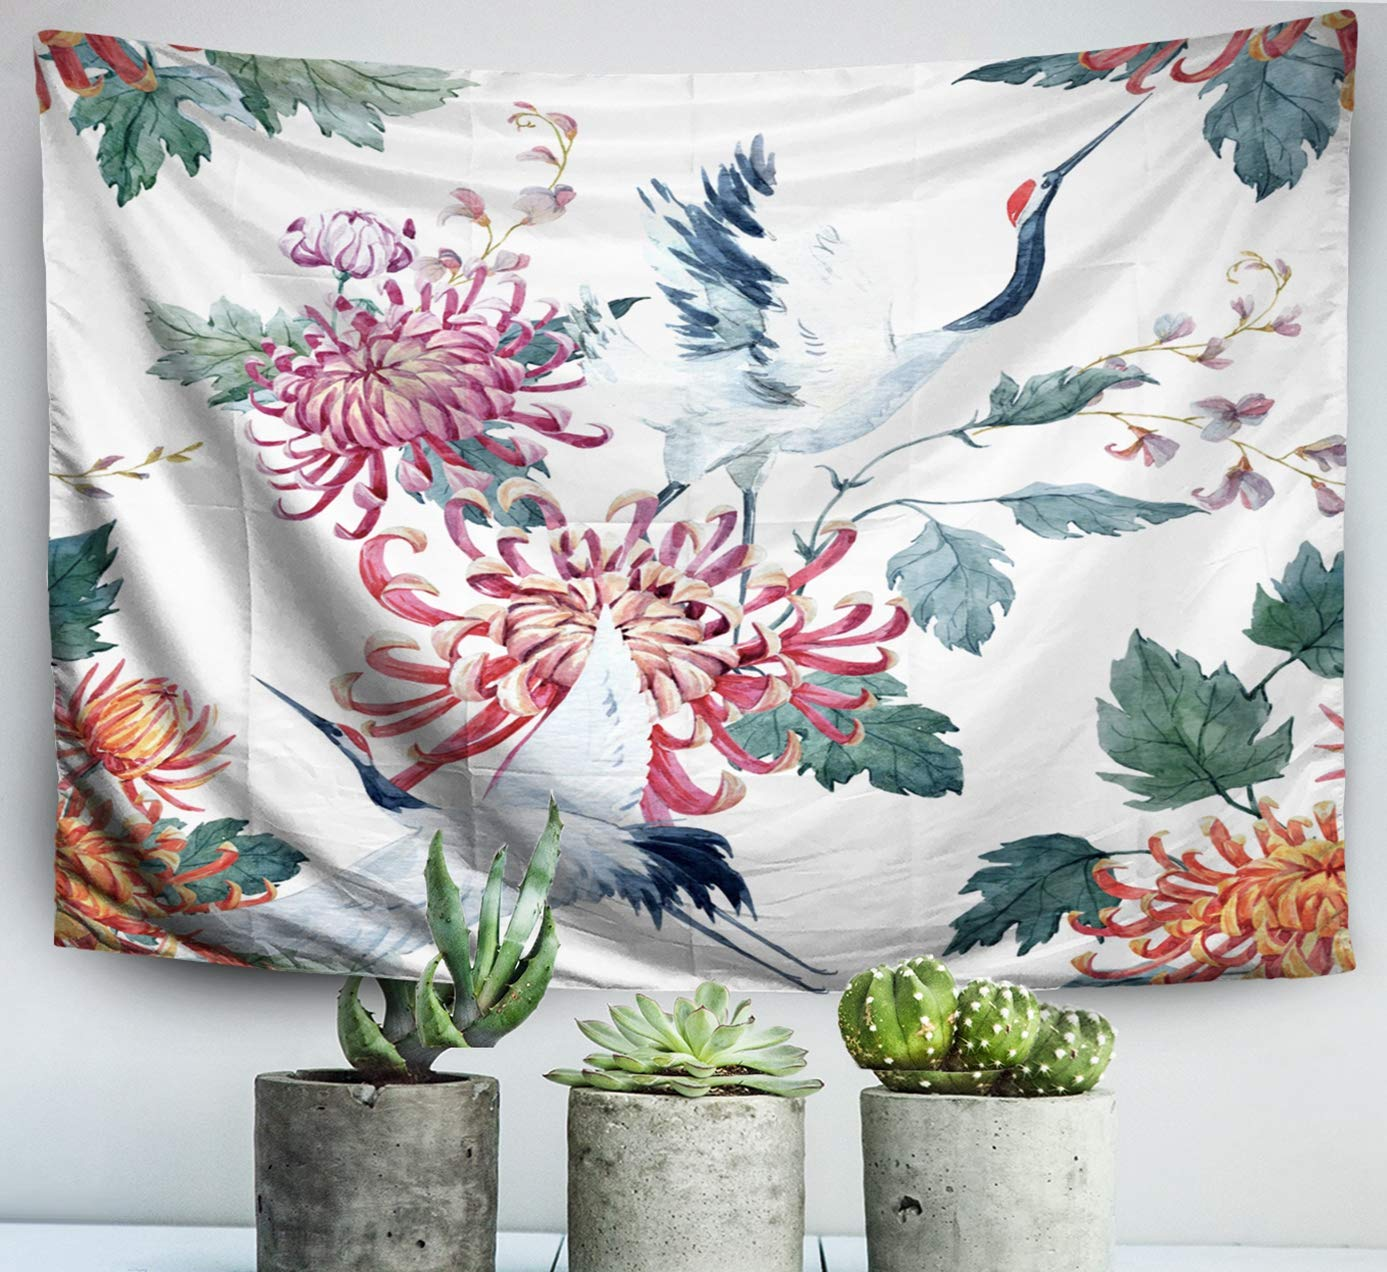 ROOLAYS Home Art Decor Wall Hanging Tapestry Watercolor Pattern Red Heads Crane Chrysanthemum Flowers Asian Traditional Motif with 60x50 Inches for Living Room Dorm Background Tapestries